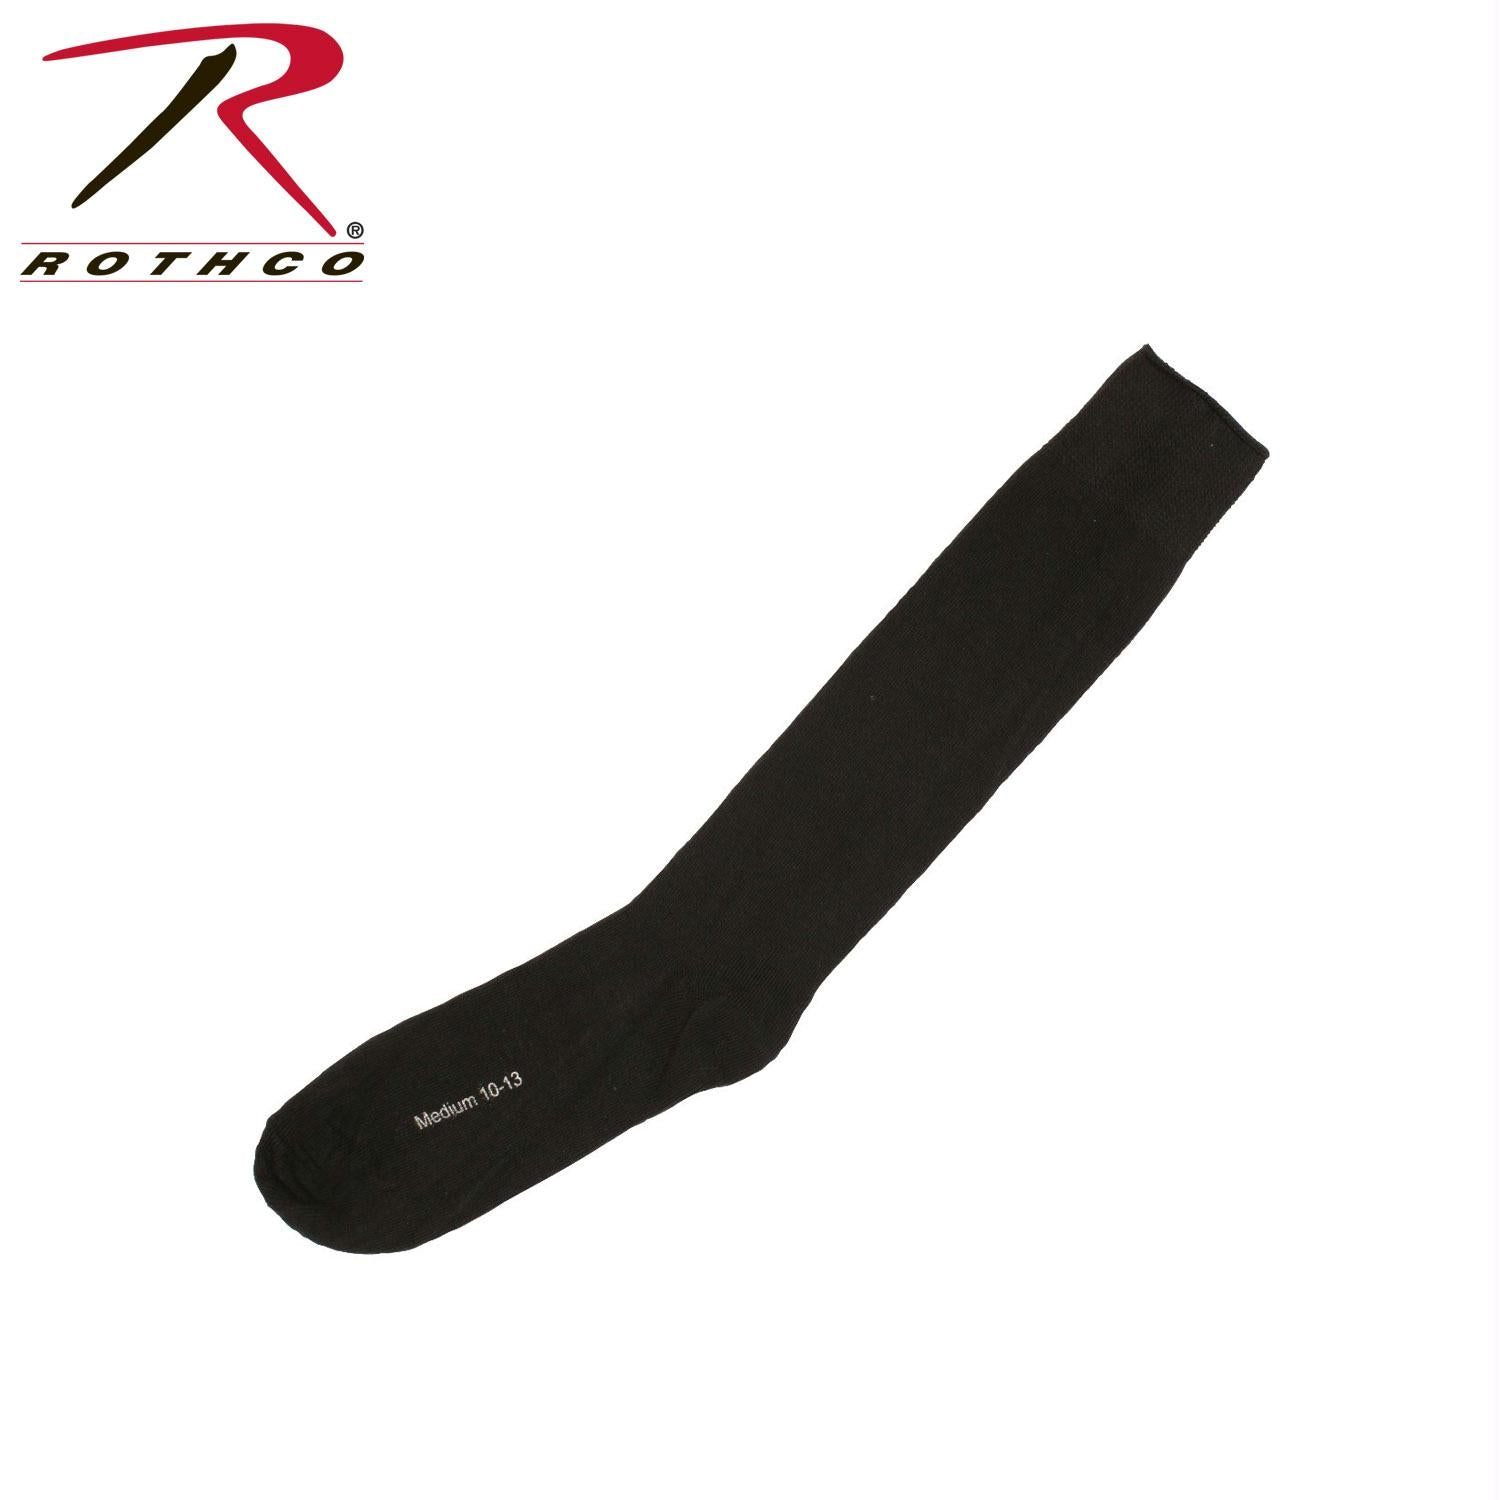 Rothco Black Irregular Polypropylene Socks